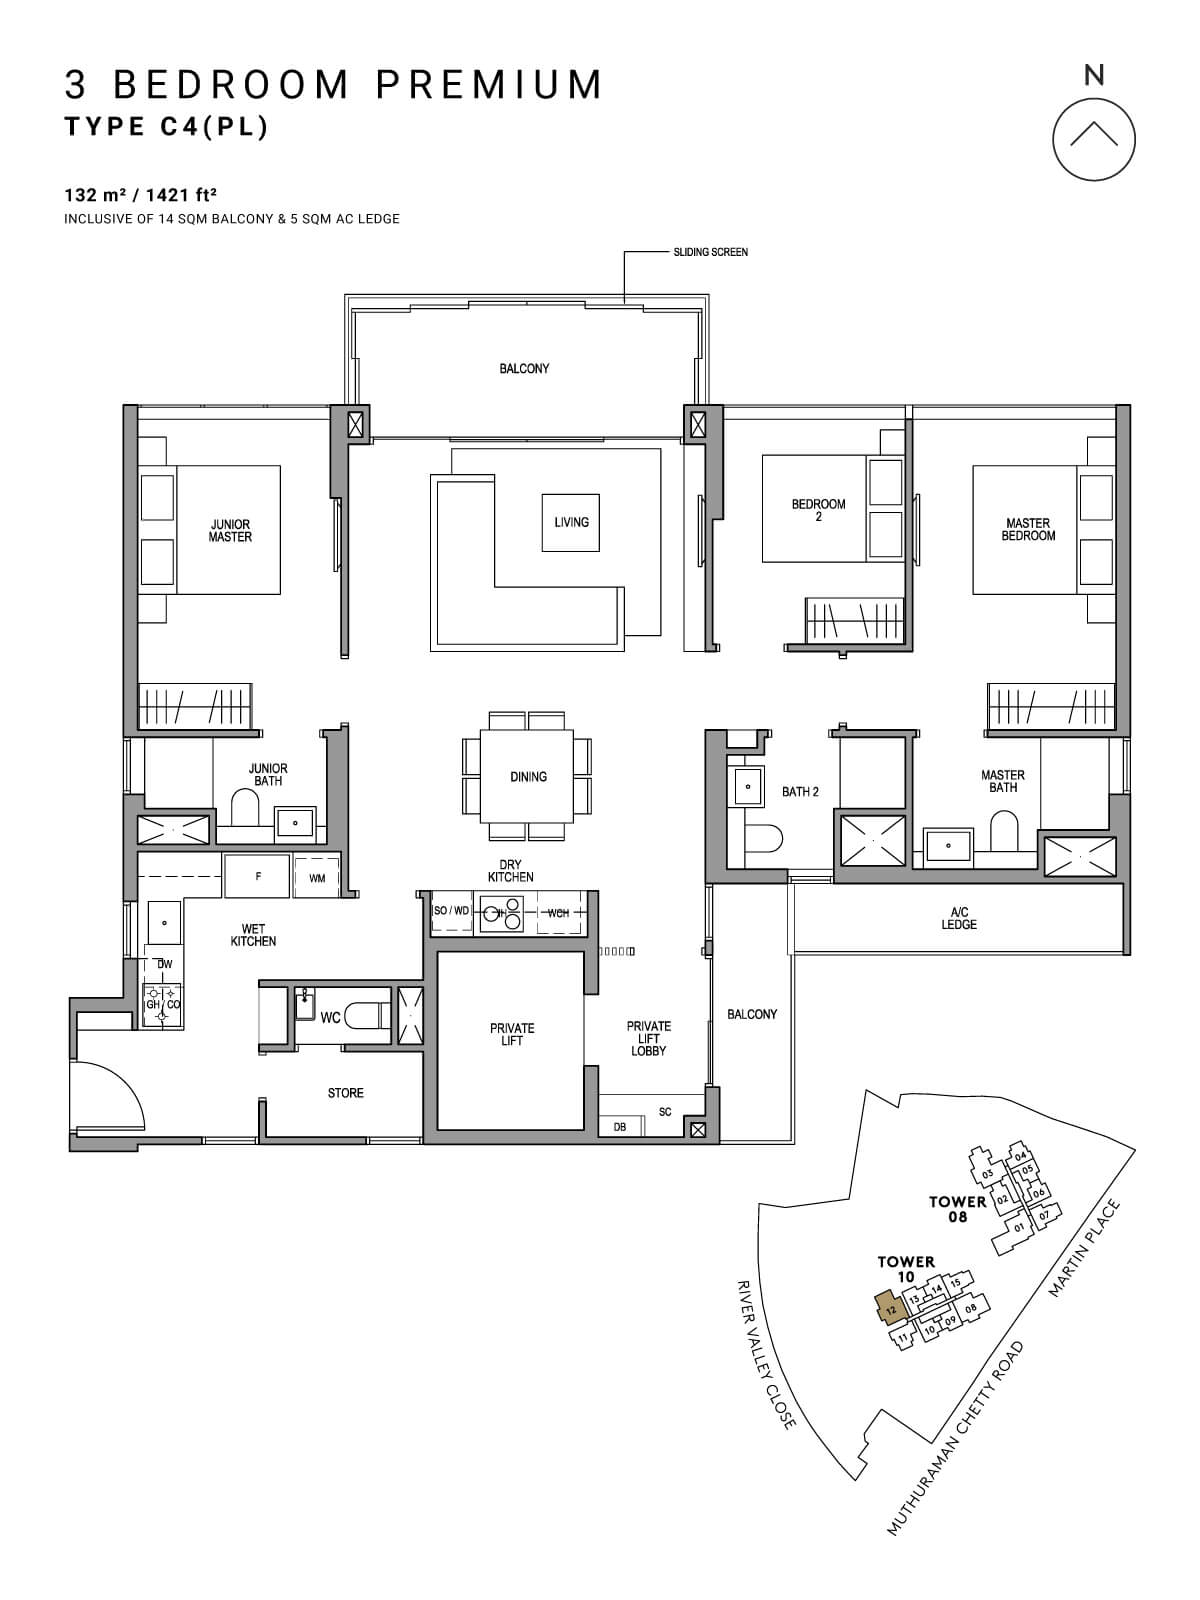 Martin Modern Floor Plan 3 Bedroom Premium Type C4(PL)